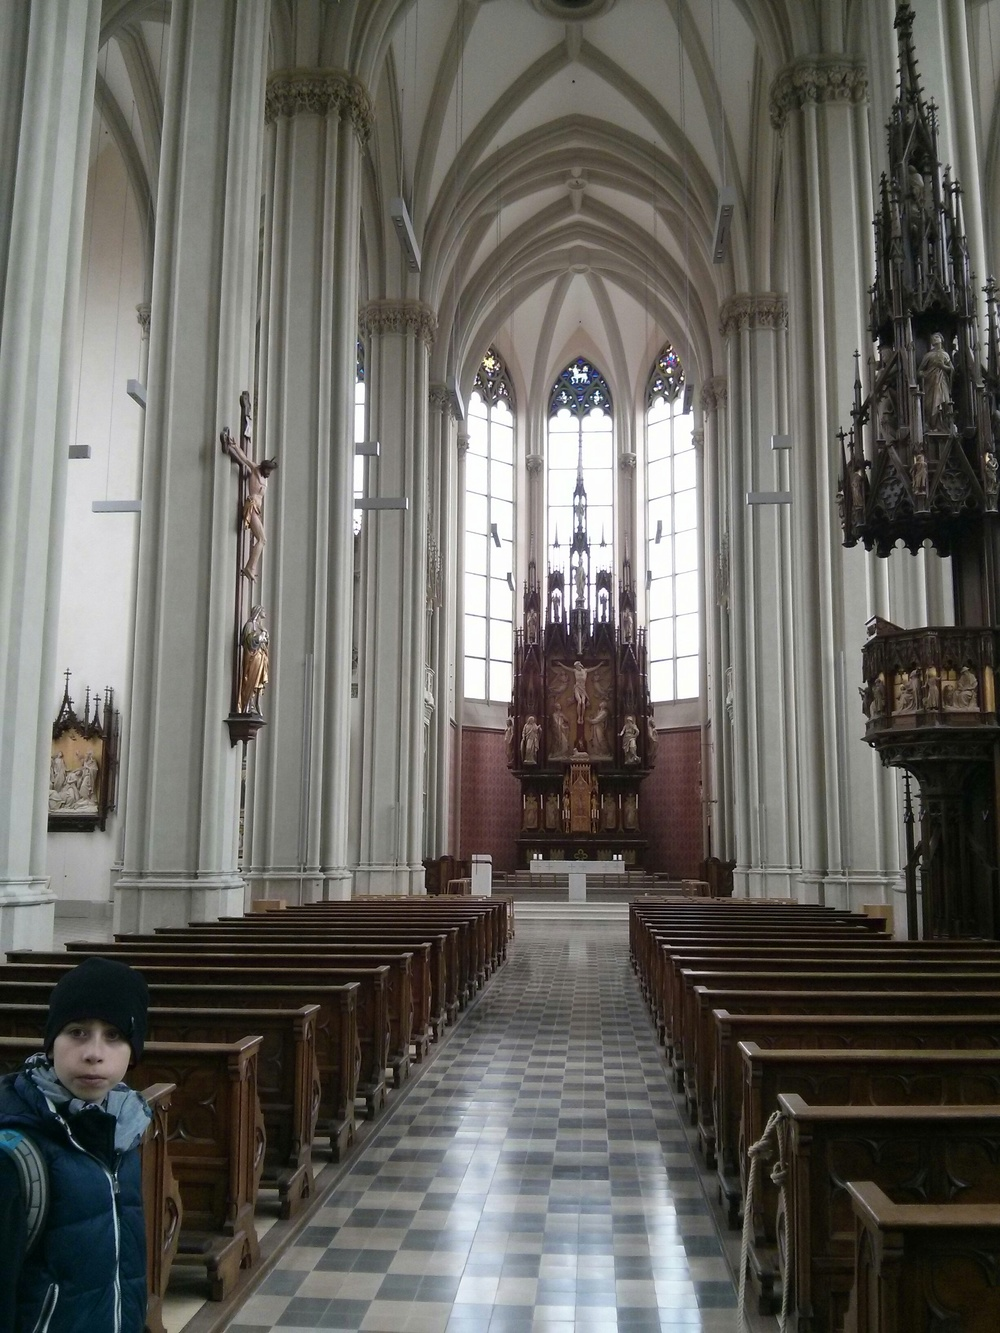 Inside of a church near where we stayed in Munich